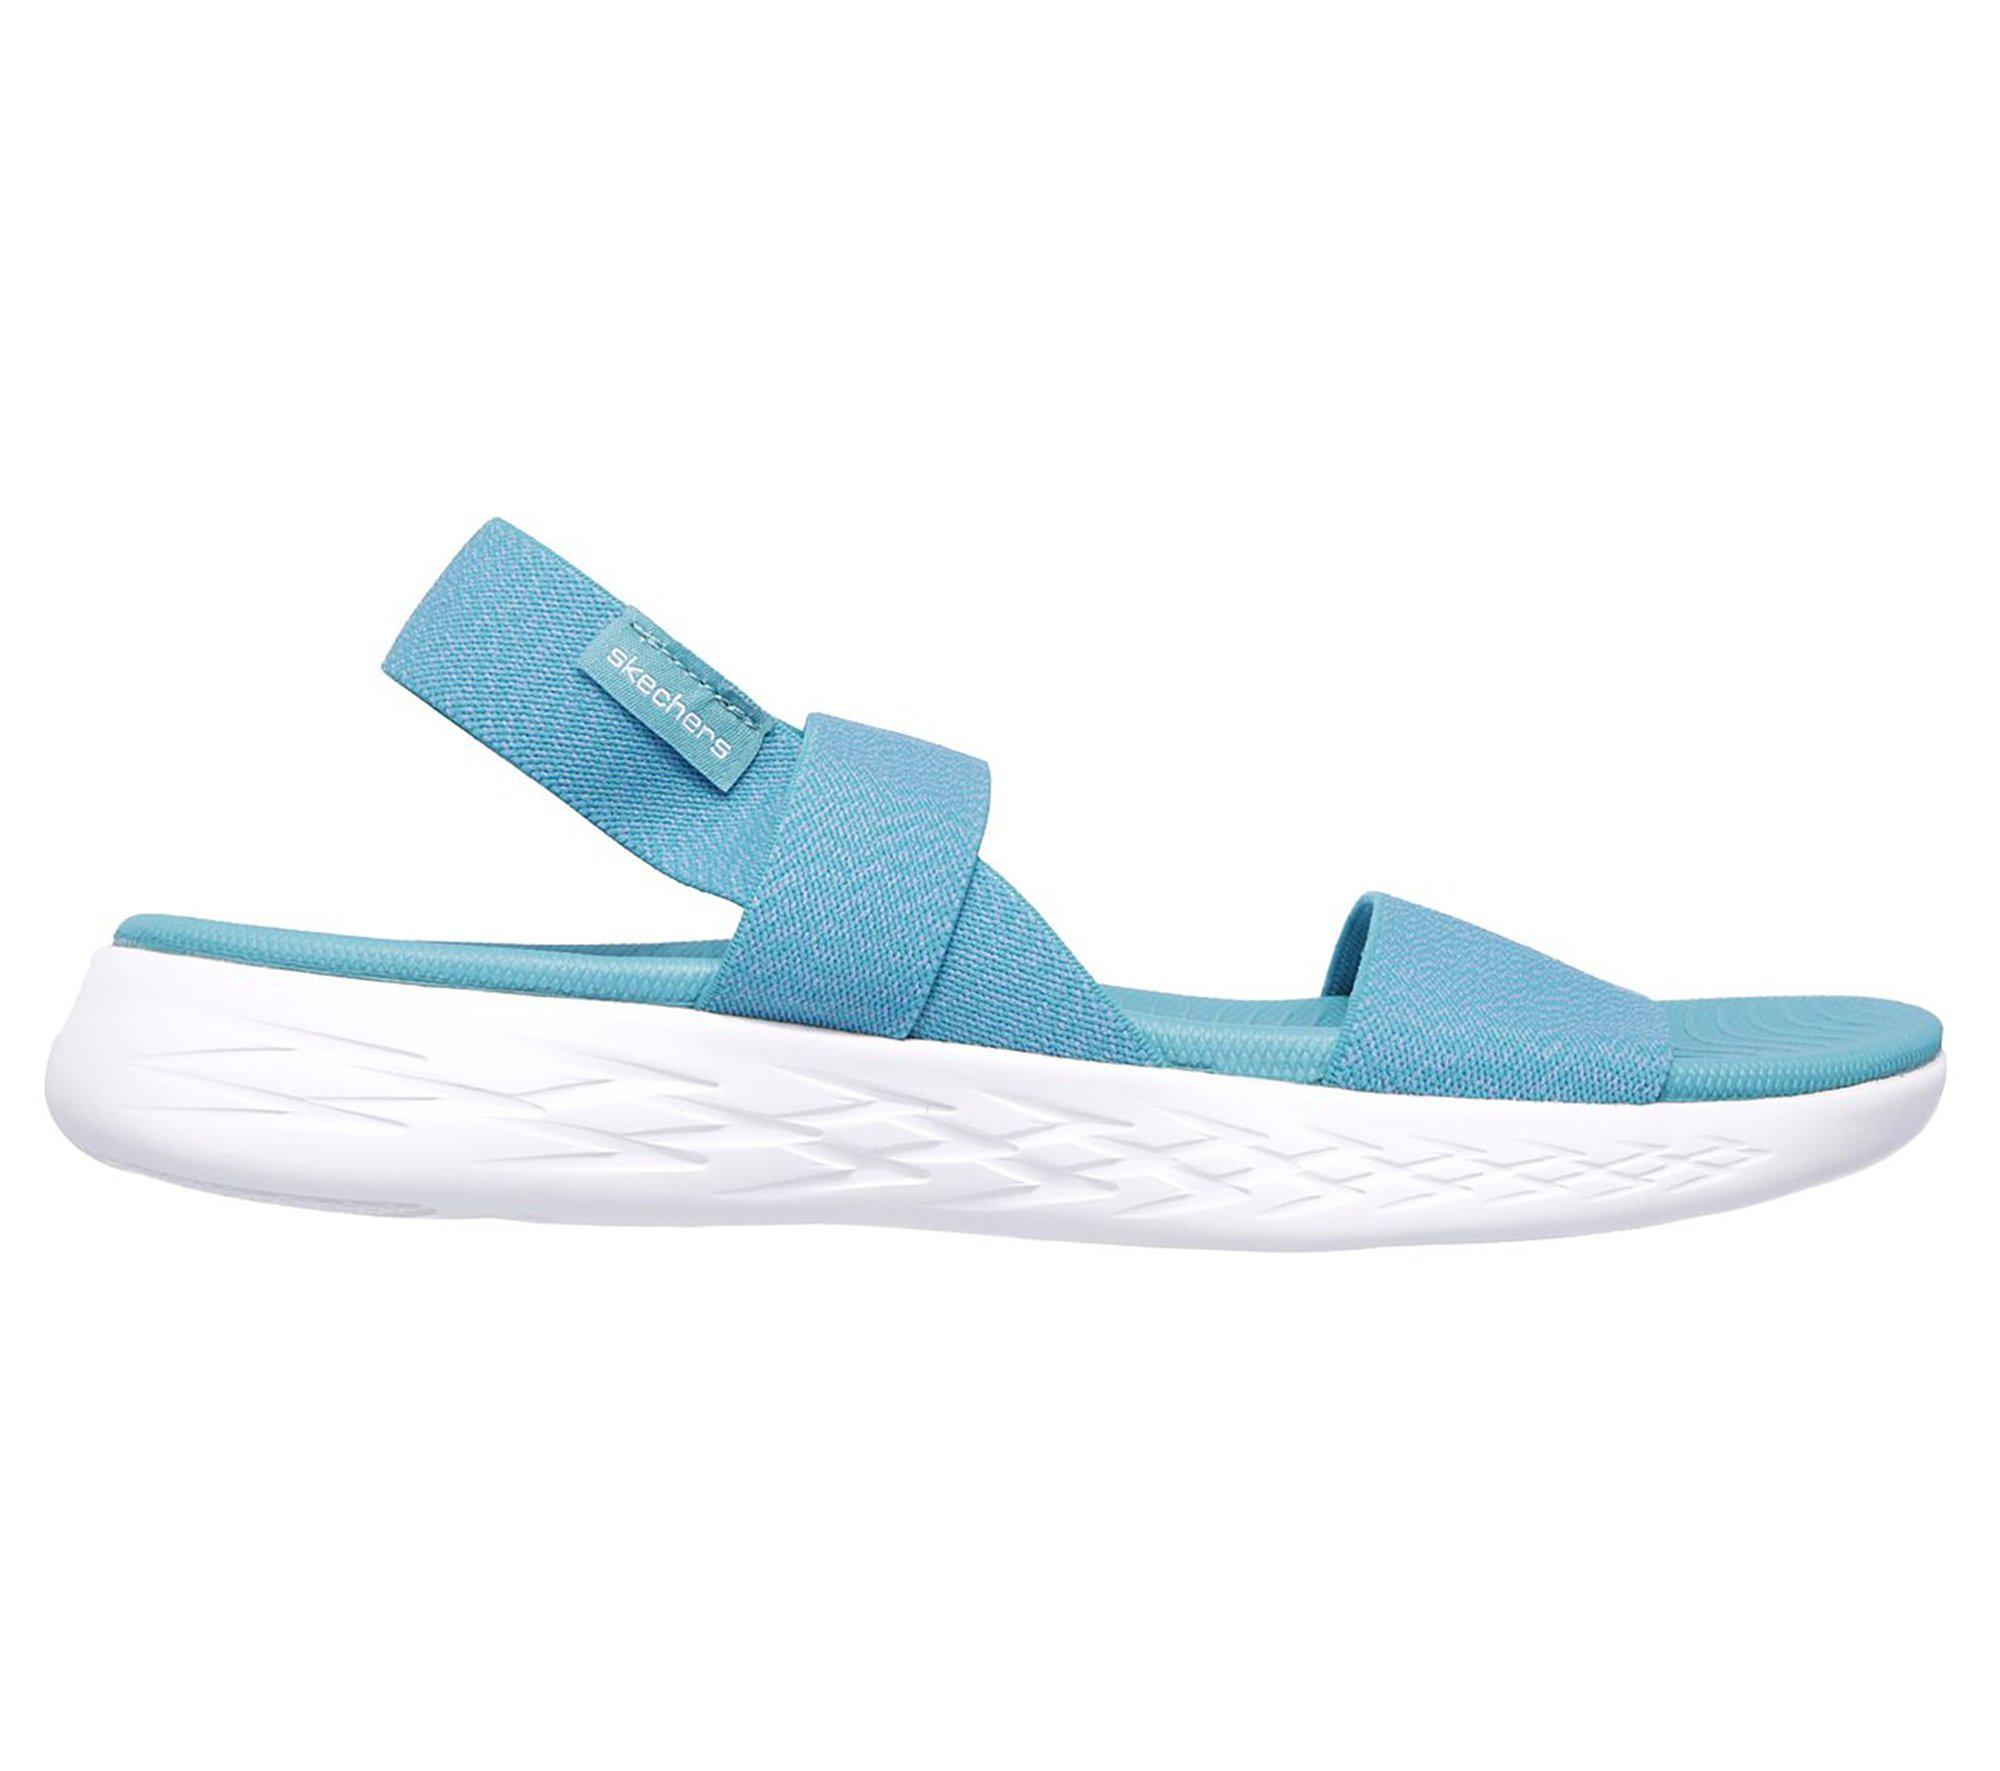 8f3b76390d5f Lyst - Skechers On The Go 600 - Ideal in Blue